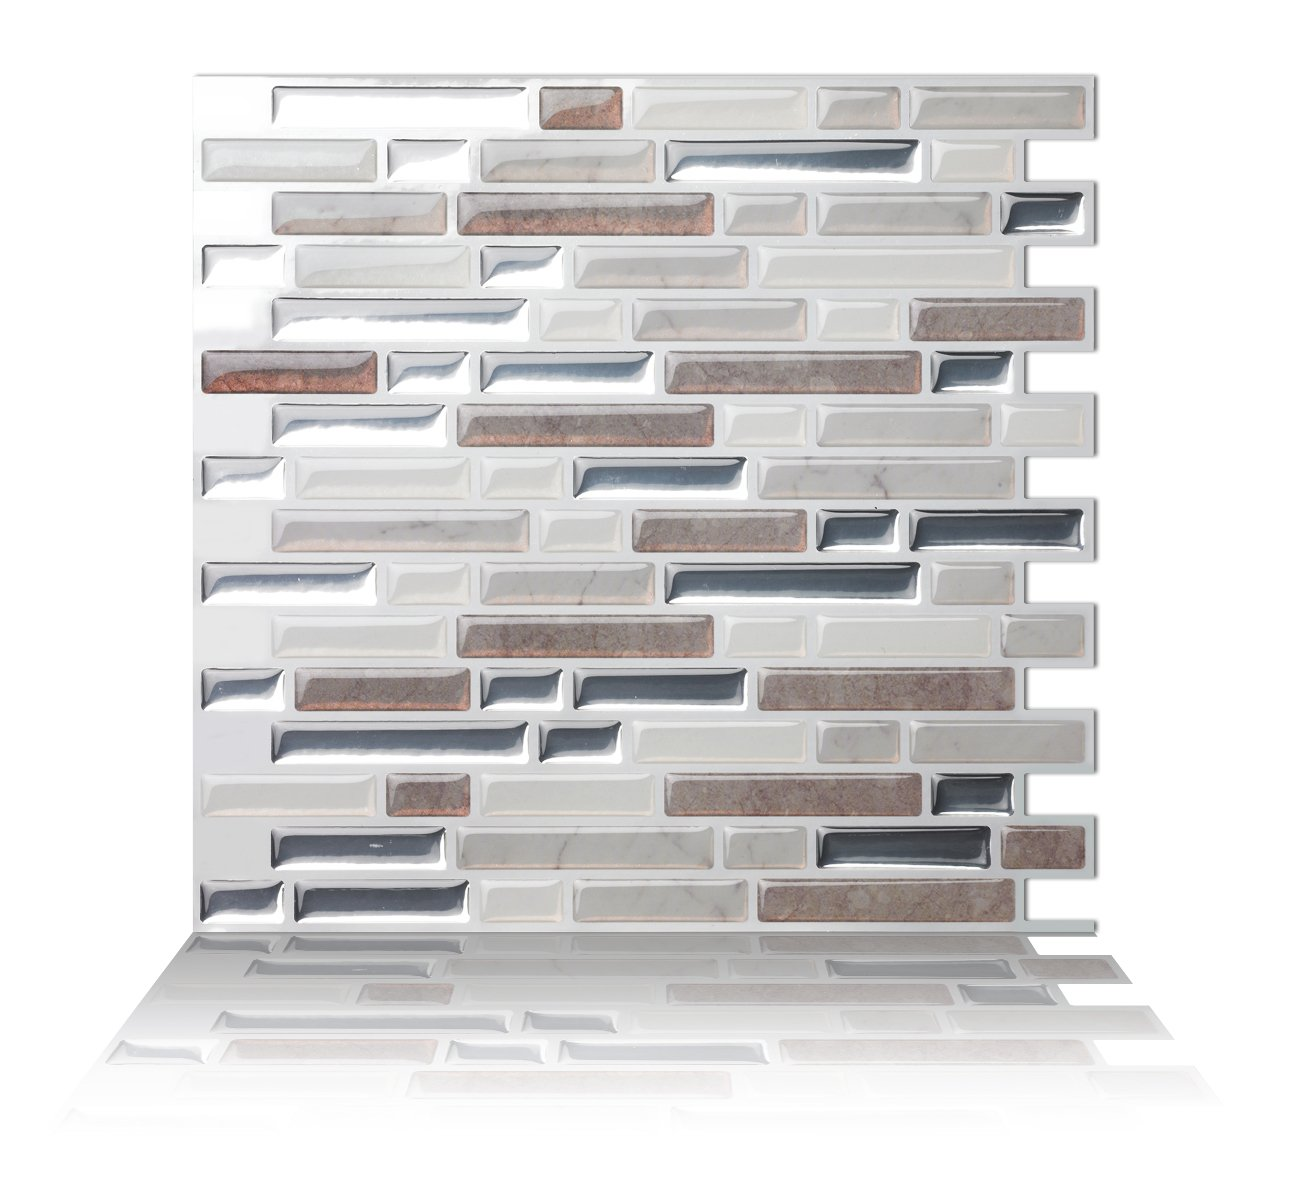 Tic Tac Tiles Anti-mold Peel and Stick Wall Tile in Como Pebble (5 ...